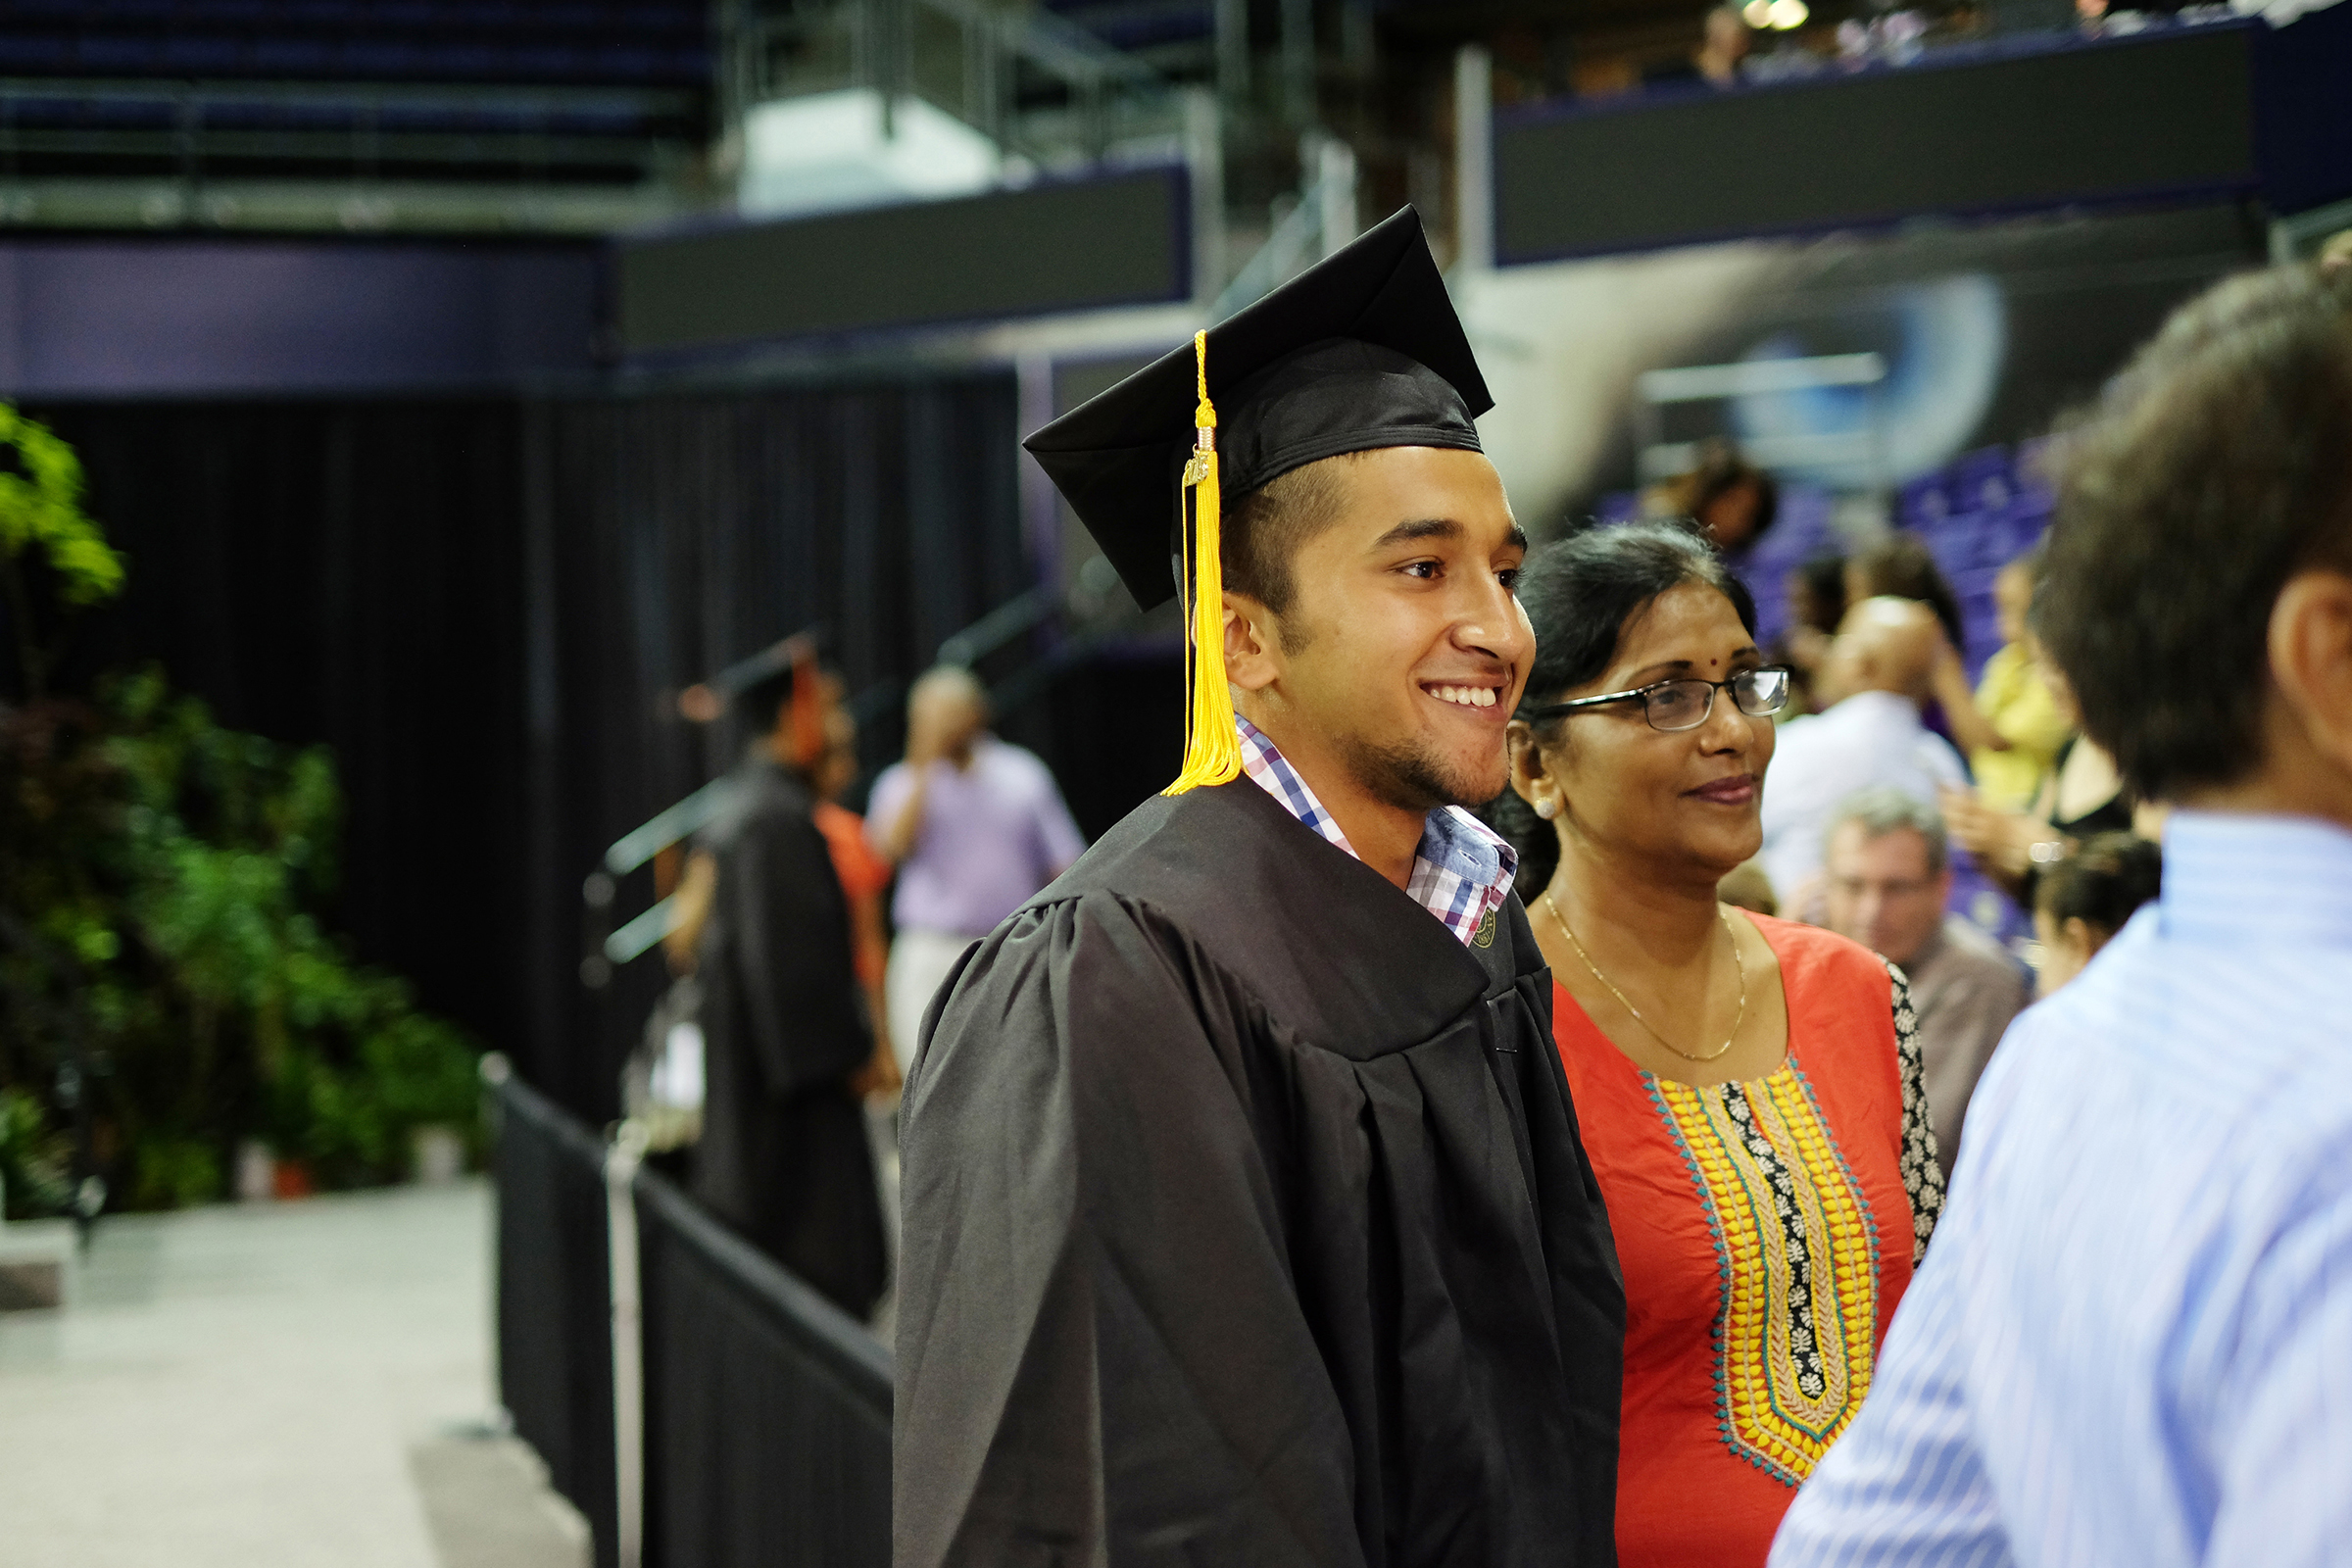 Graduates and guests at the arena